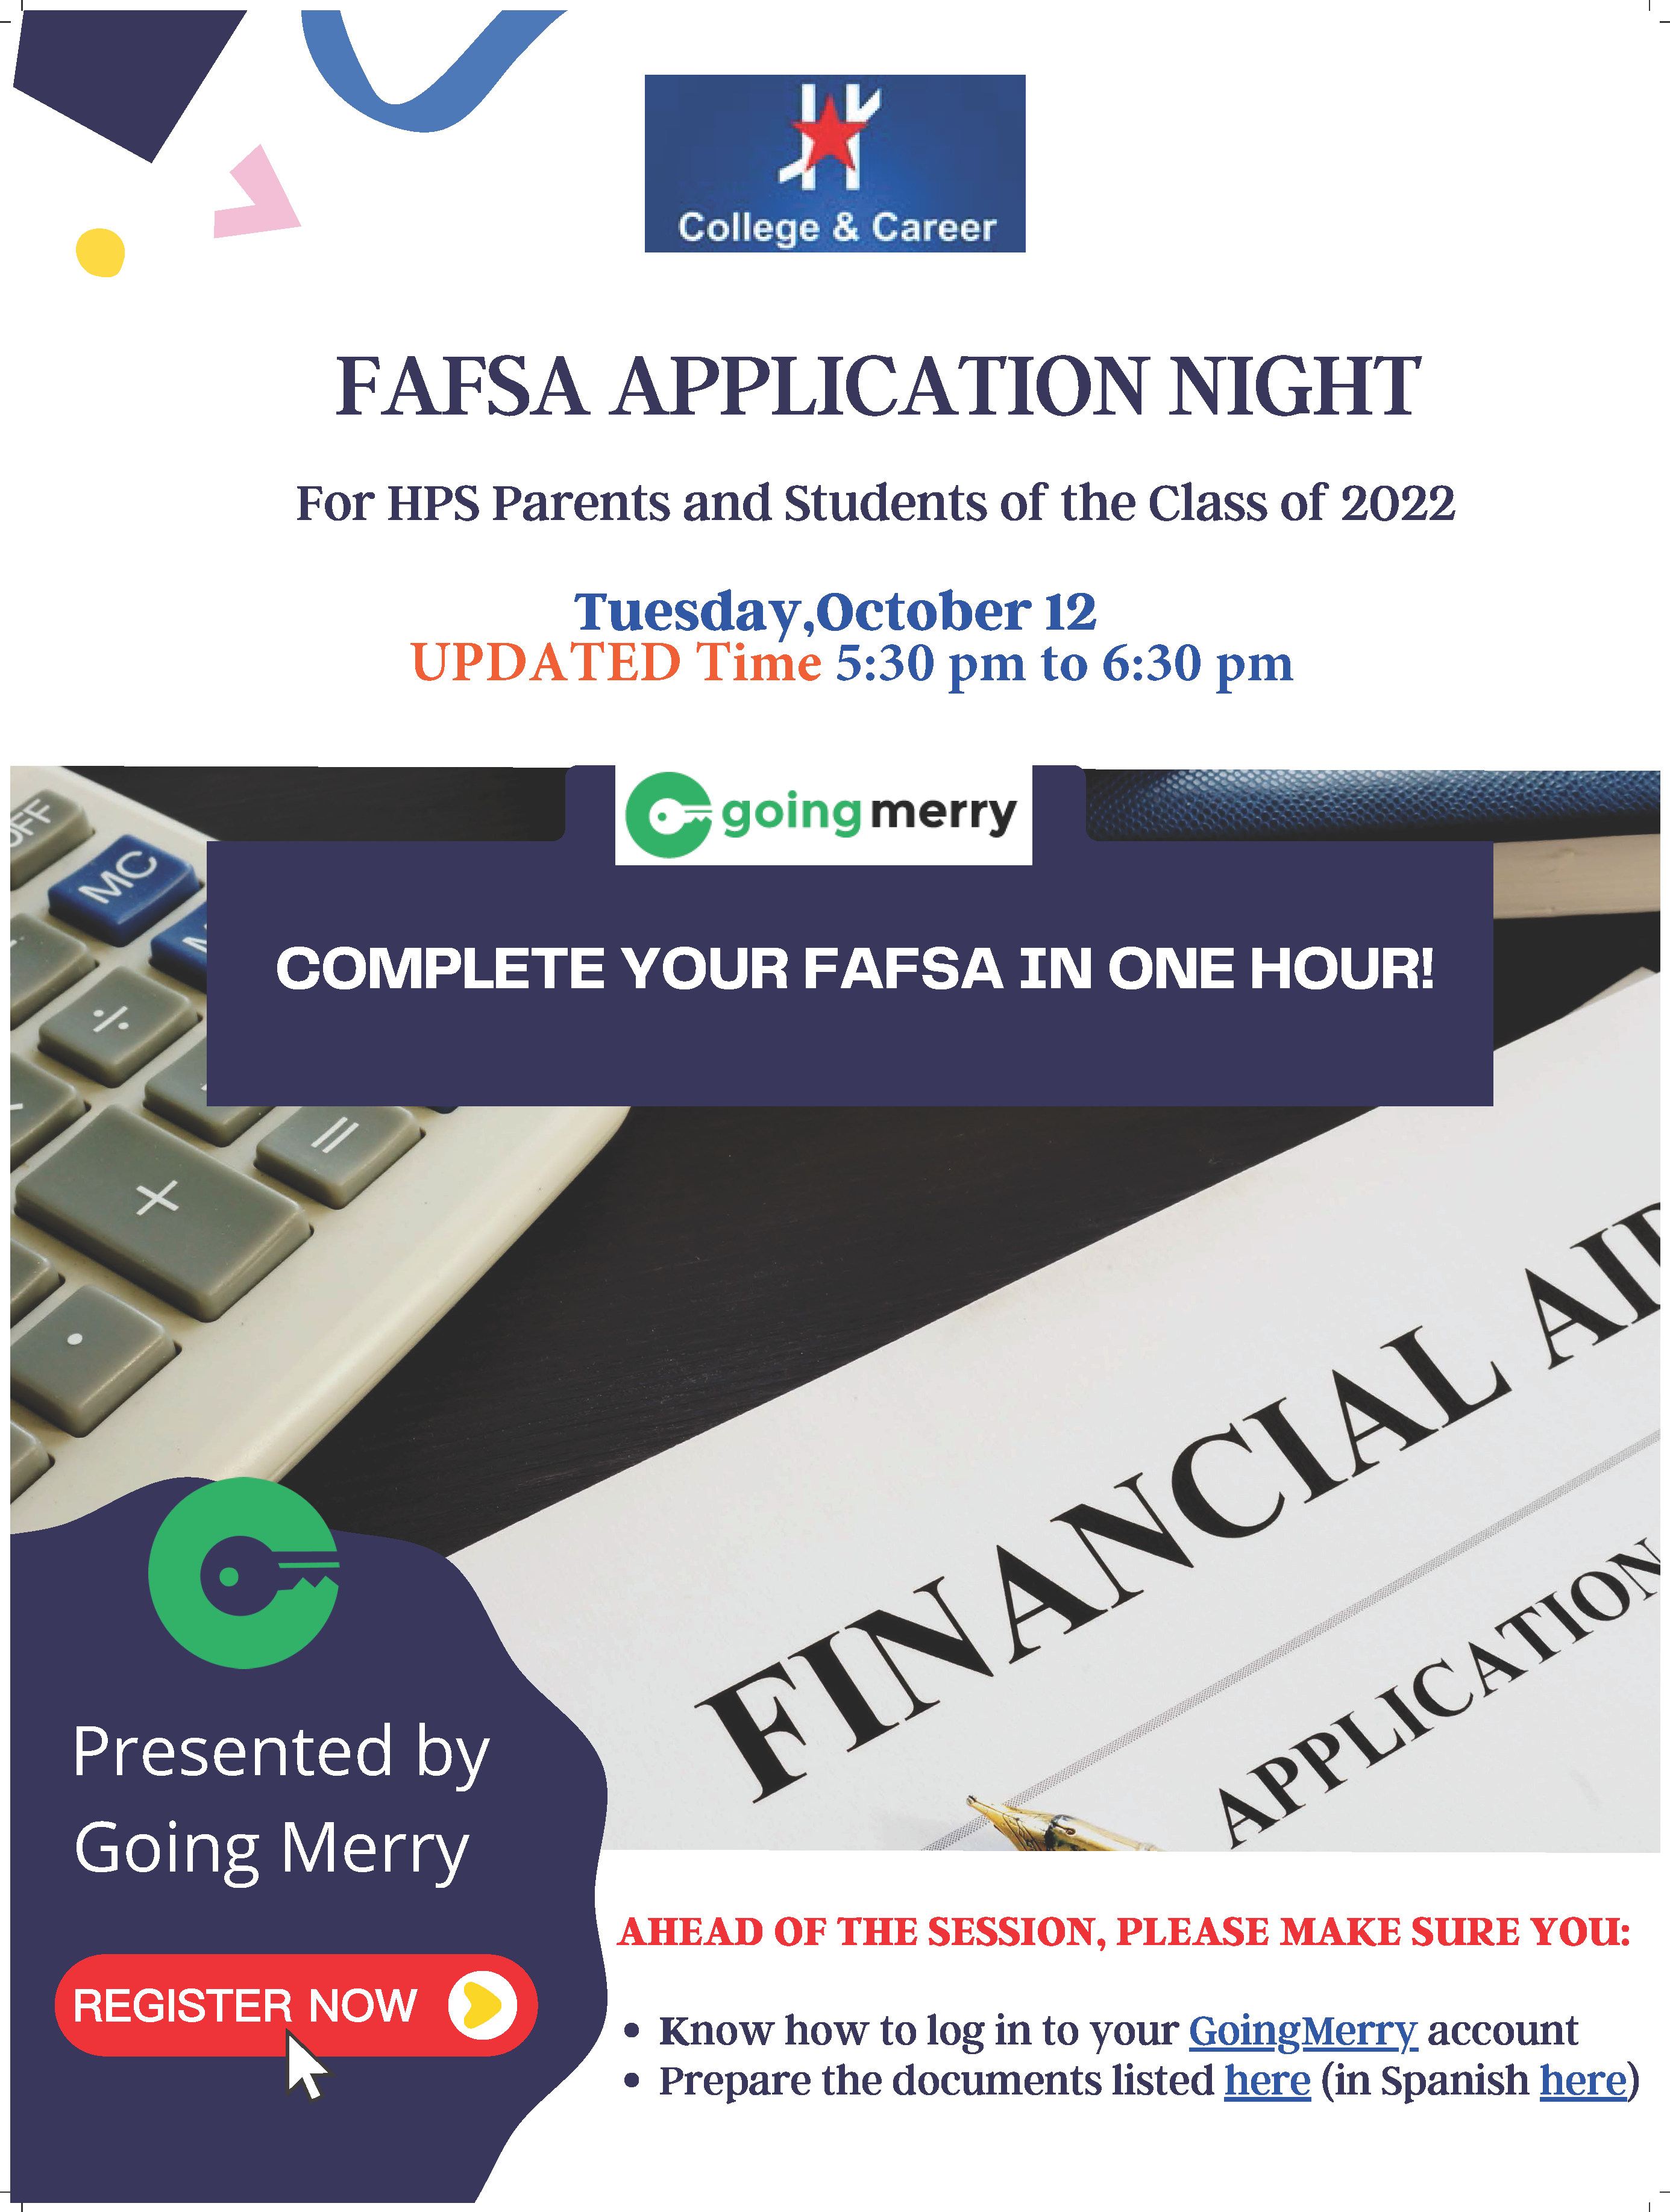 An image of the FAFSA Night flyer.